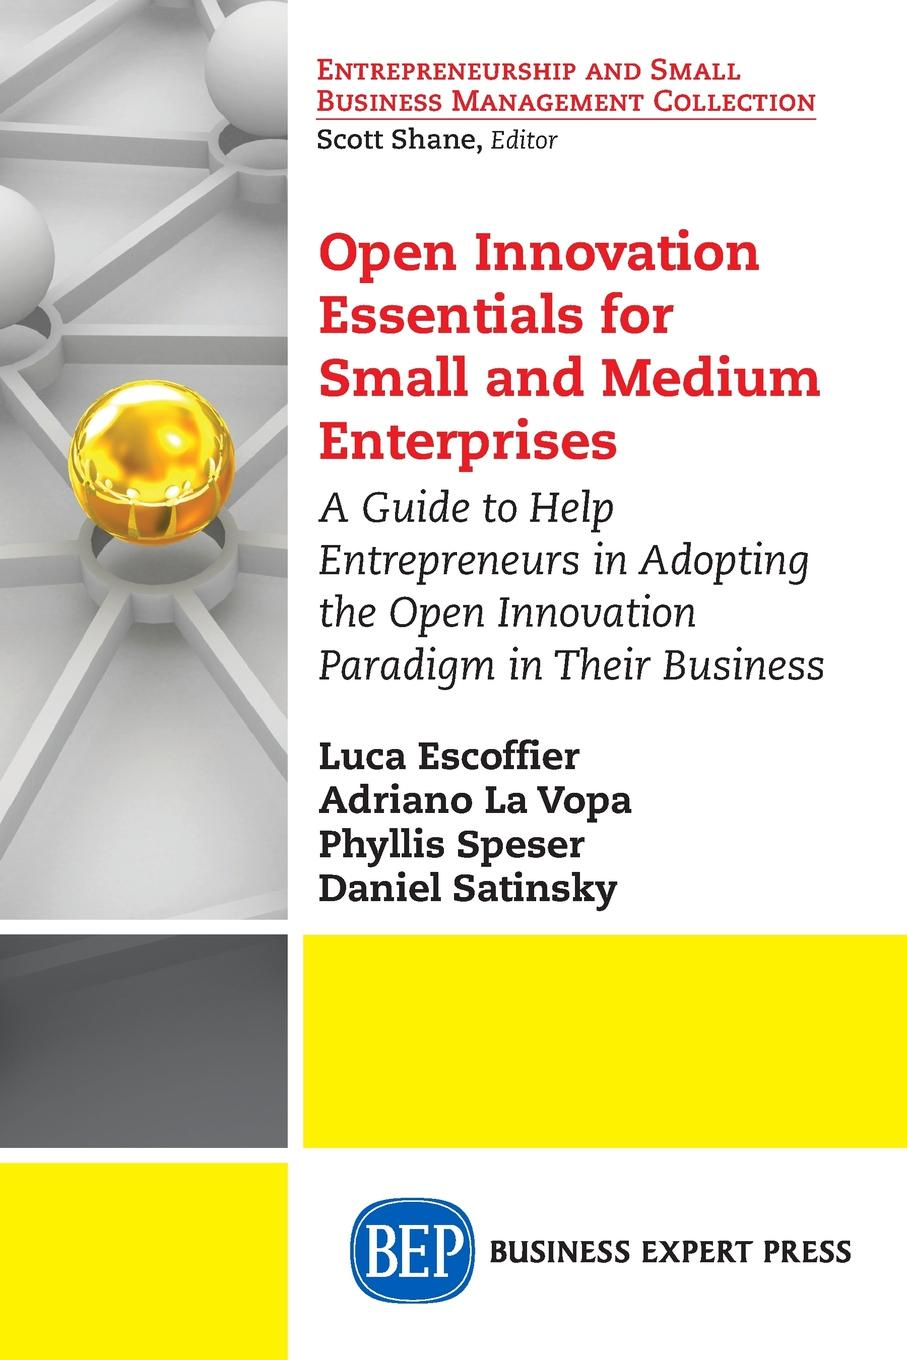 Luca Escoffier, Adriano La Vopa, Phyllis Speser Open Innovation Essentials for Small and Medium Enterprises. A Guide to Help Entrepreneurs in Adopting the Open Innovation Paradigm in Their Business lowellyne james sustainability footprints in smes strategy and case studies for entrepreneurs and small business